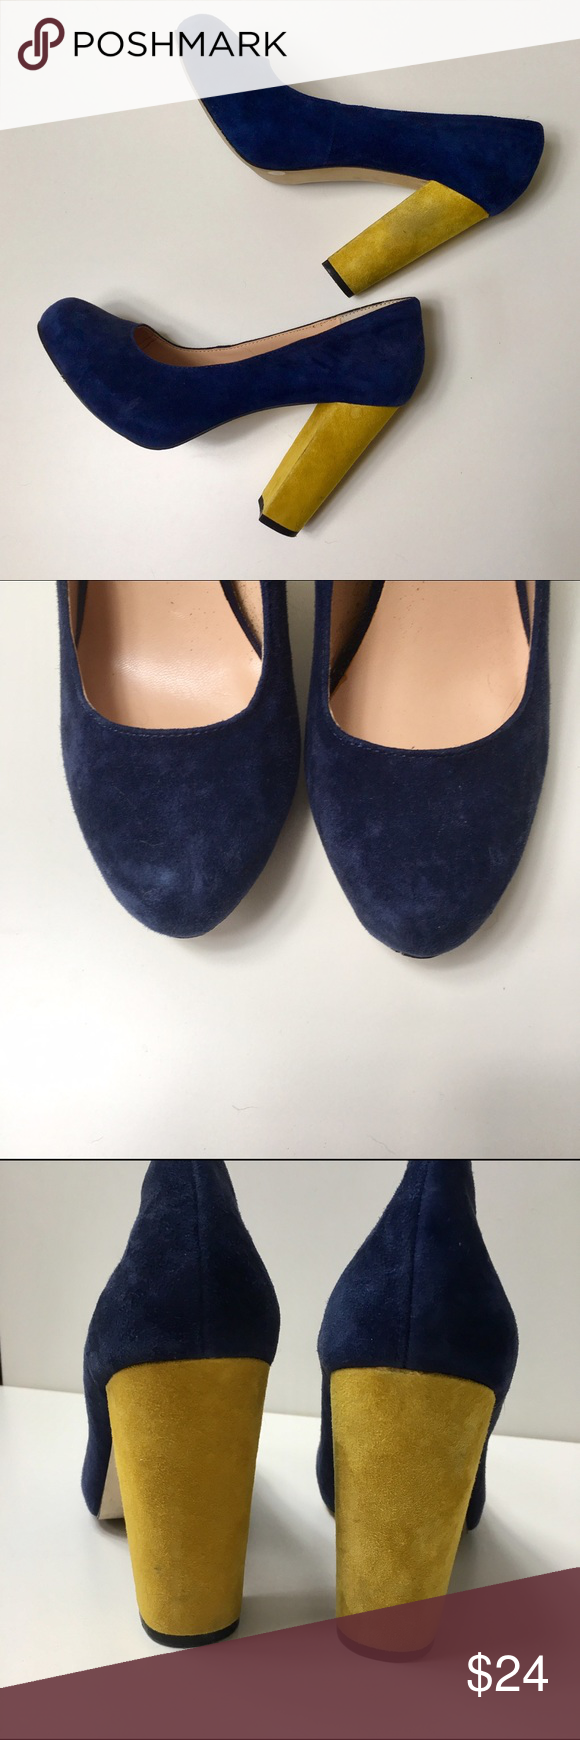 Sole society suede navy and yellow chunky heels Sole society navy and yellow chunky heels; some wear on suede as shown in photos Sole Society Shoes Heels